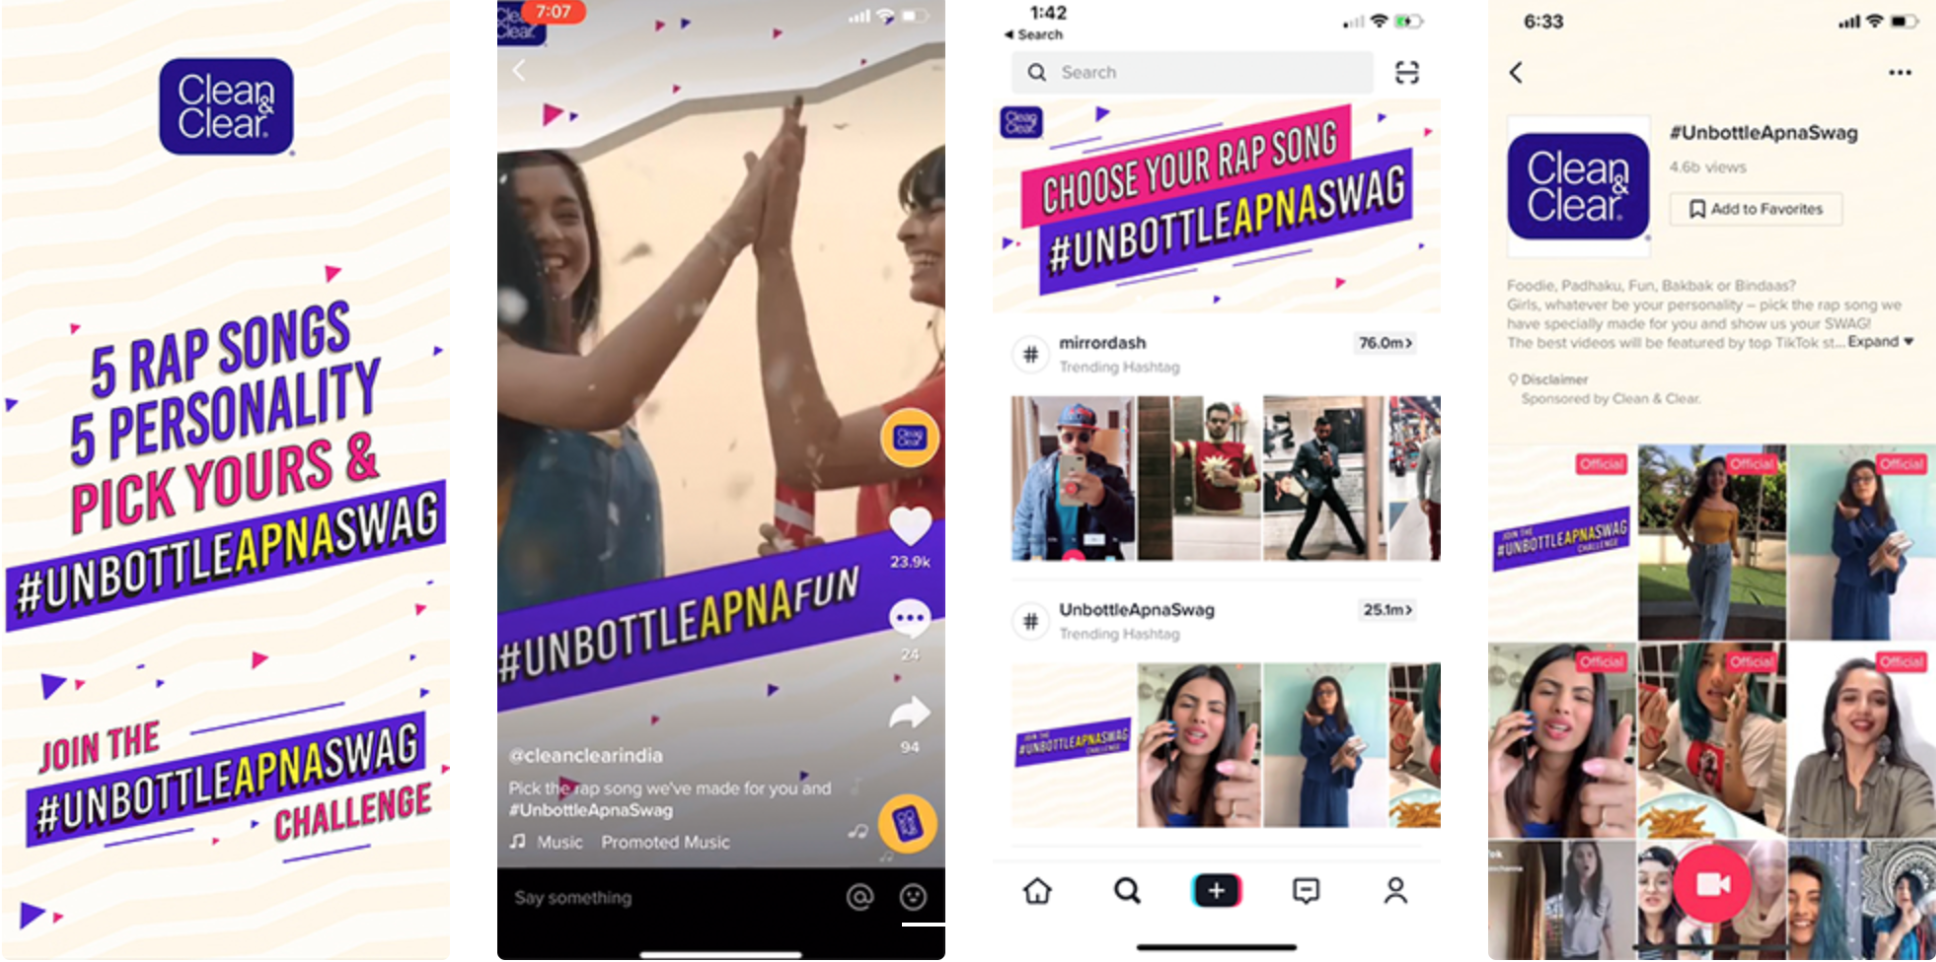 Clean & Clear TiKTok ad example